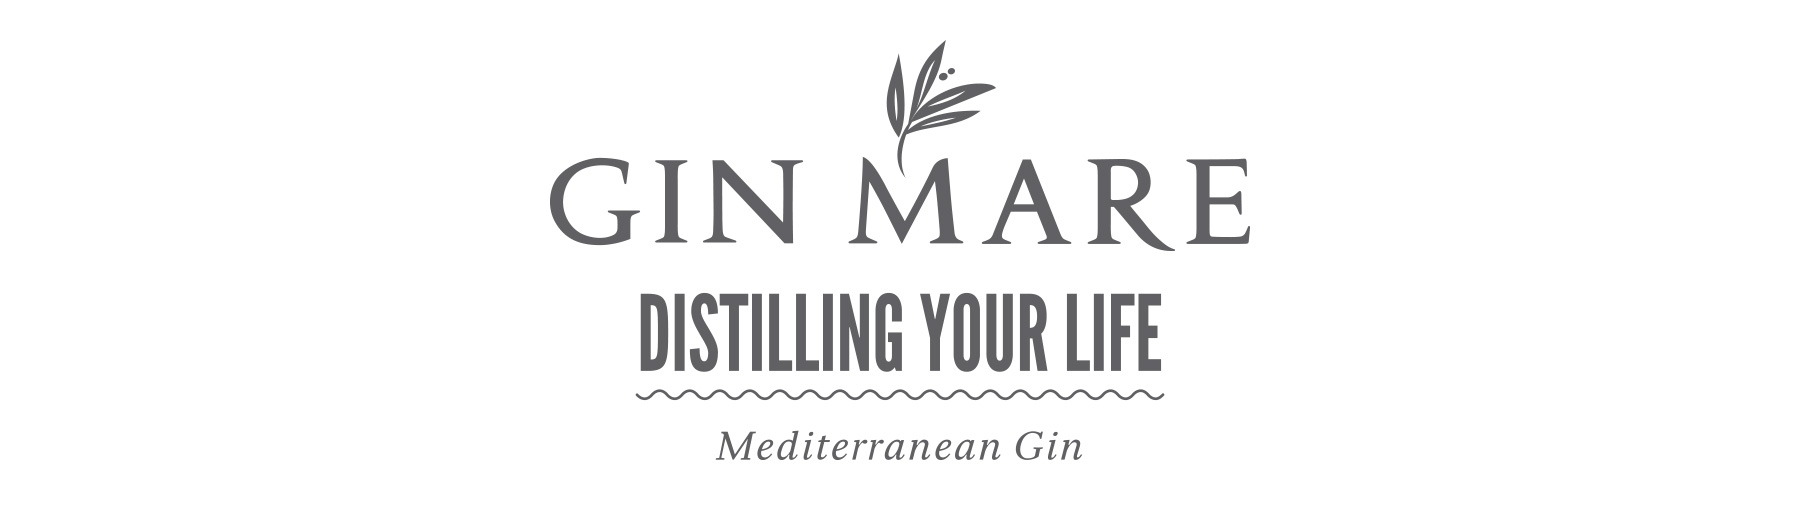 Gin Mare Distilling your life